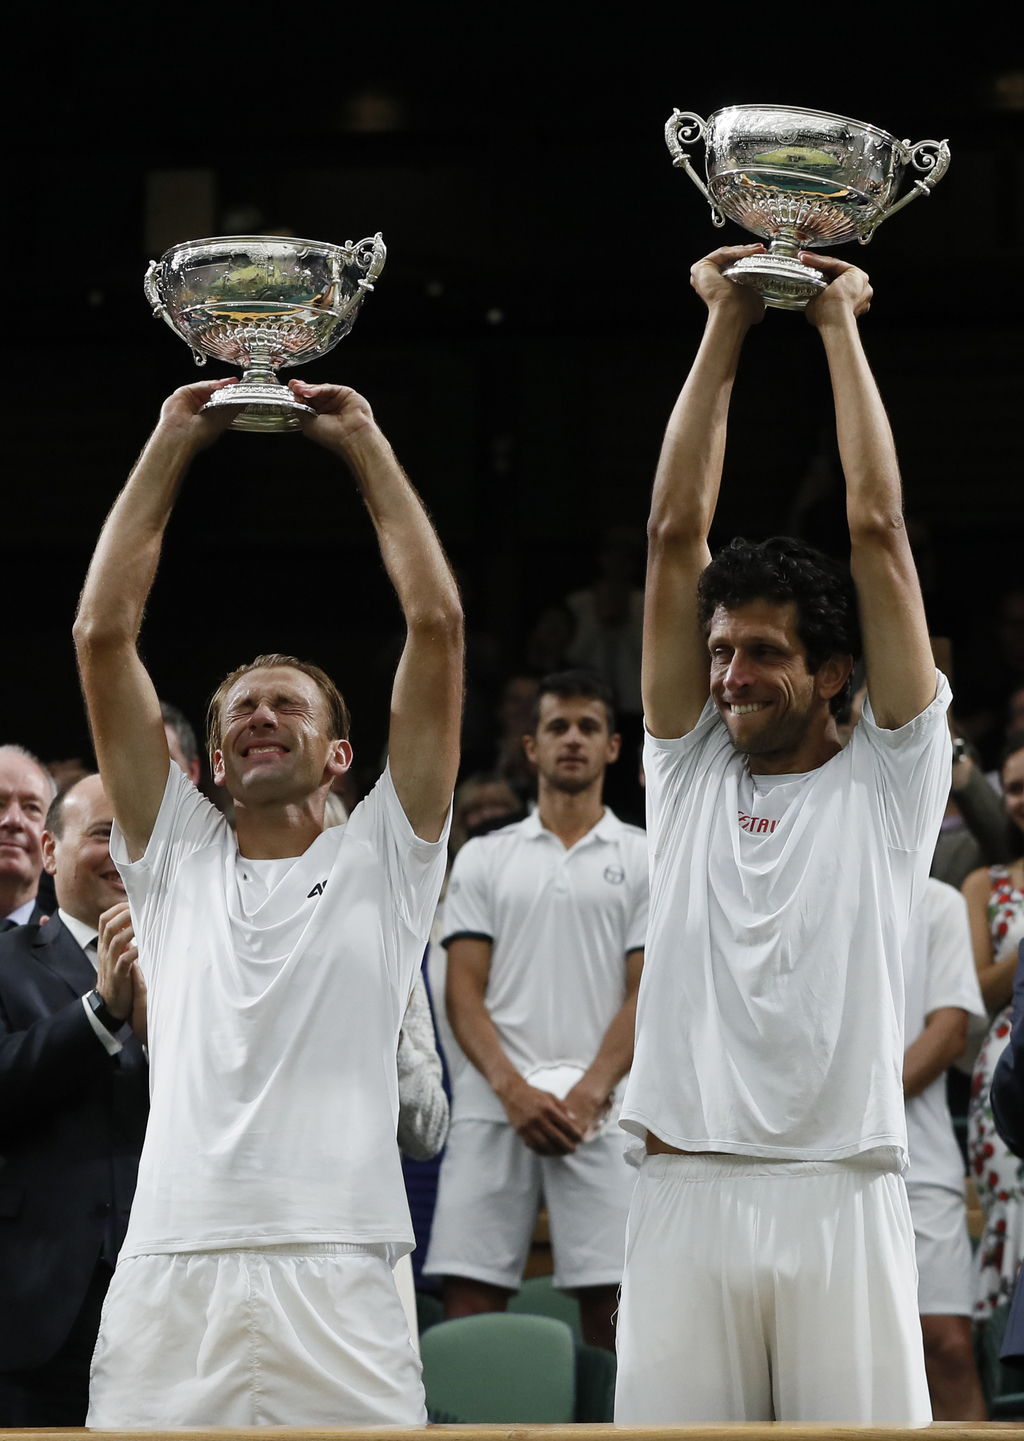 Poland's Lukasz Kubot, left, and Brazil's Marcelo Melo hold up their winners trophies after defeating Austria's Oliver Marach, and Croatia's Mate Pavi